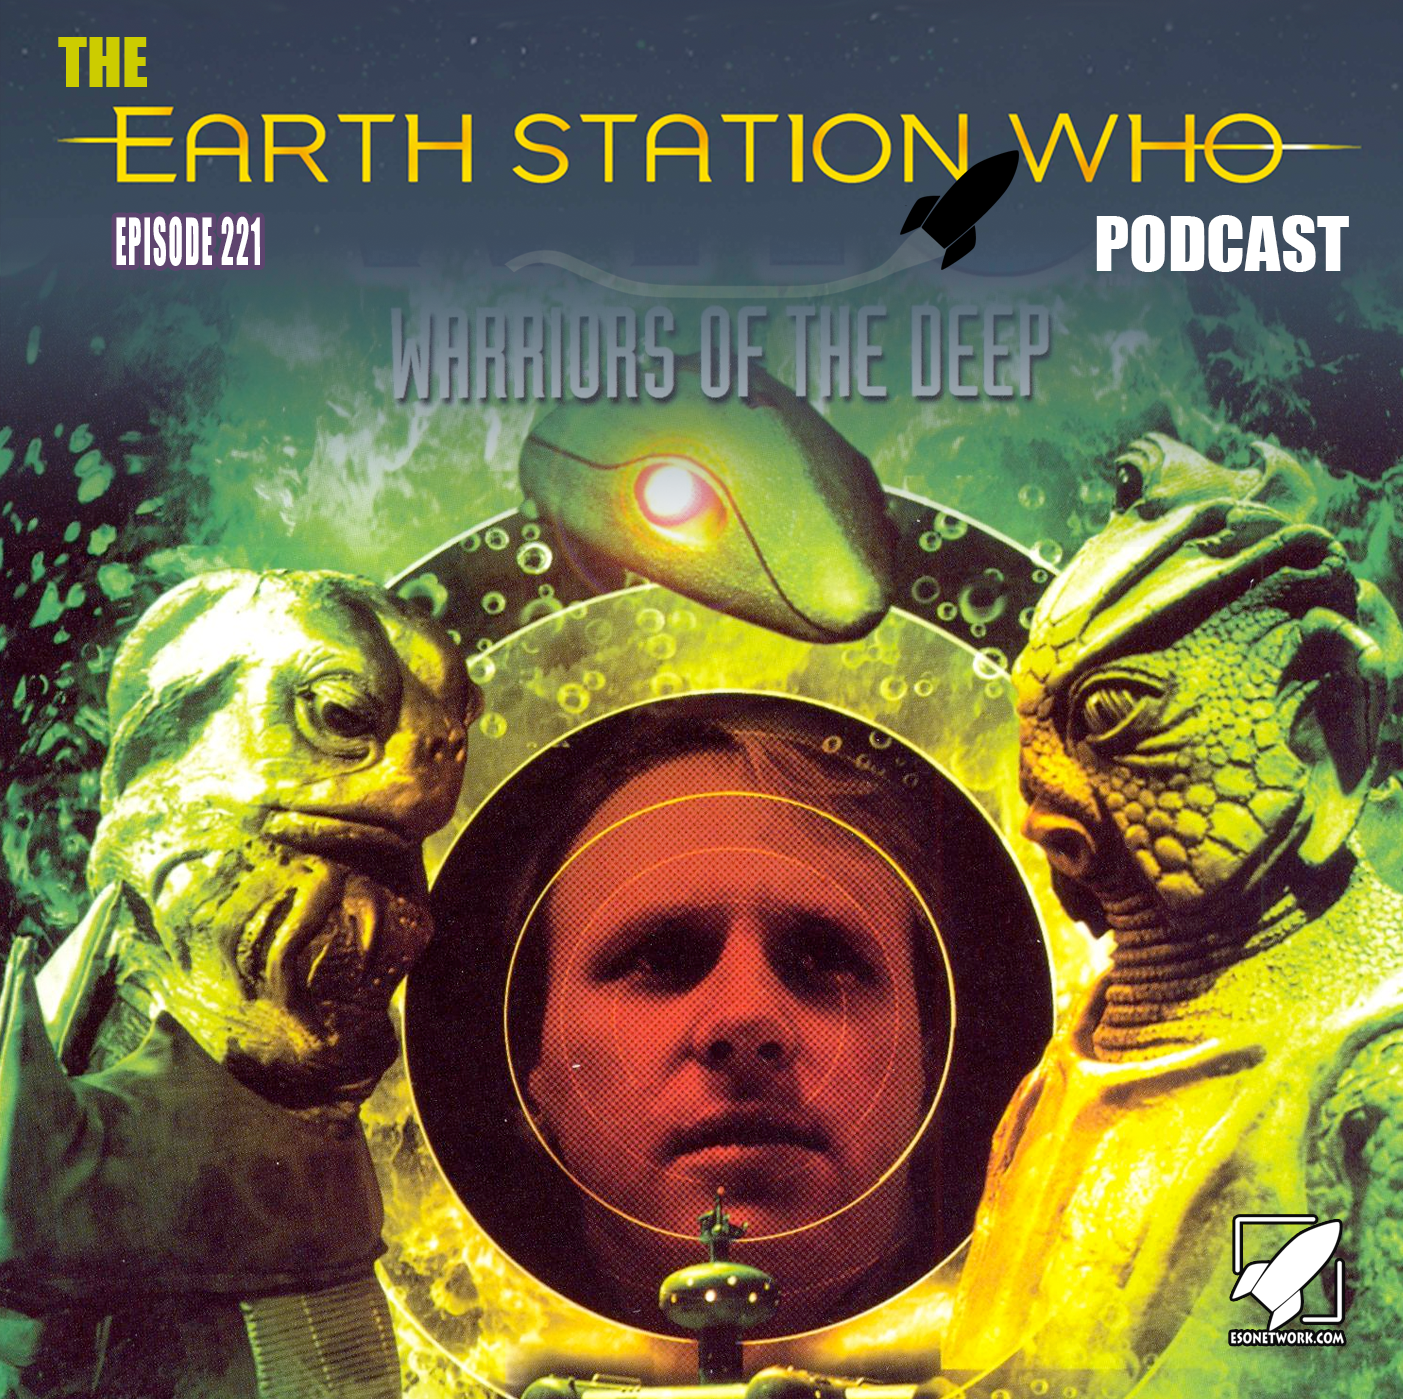 Ther Earth Station Who Podcast Ep 221